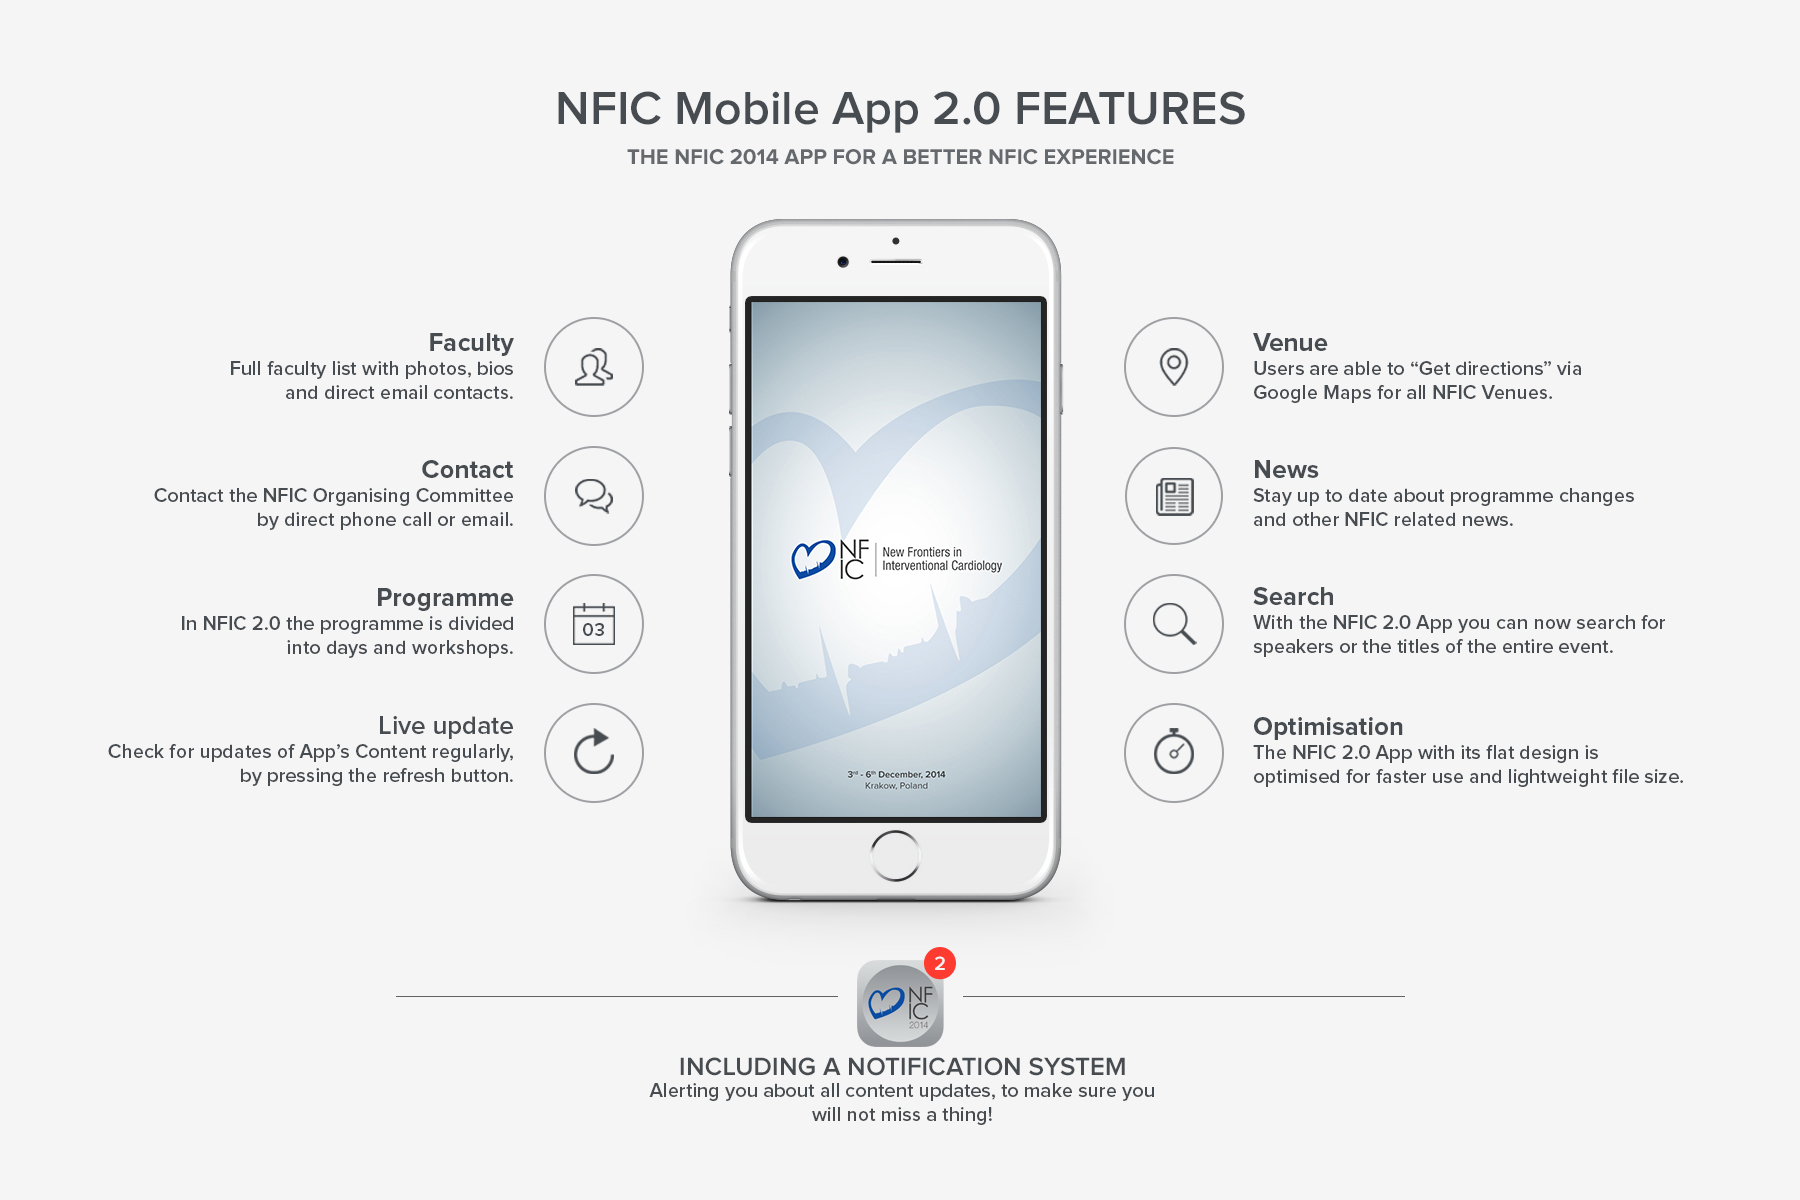 NFICMOBILEAPPWEB_MainFeatures_1800x1200